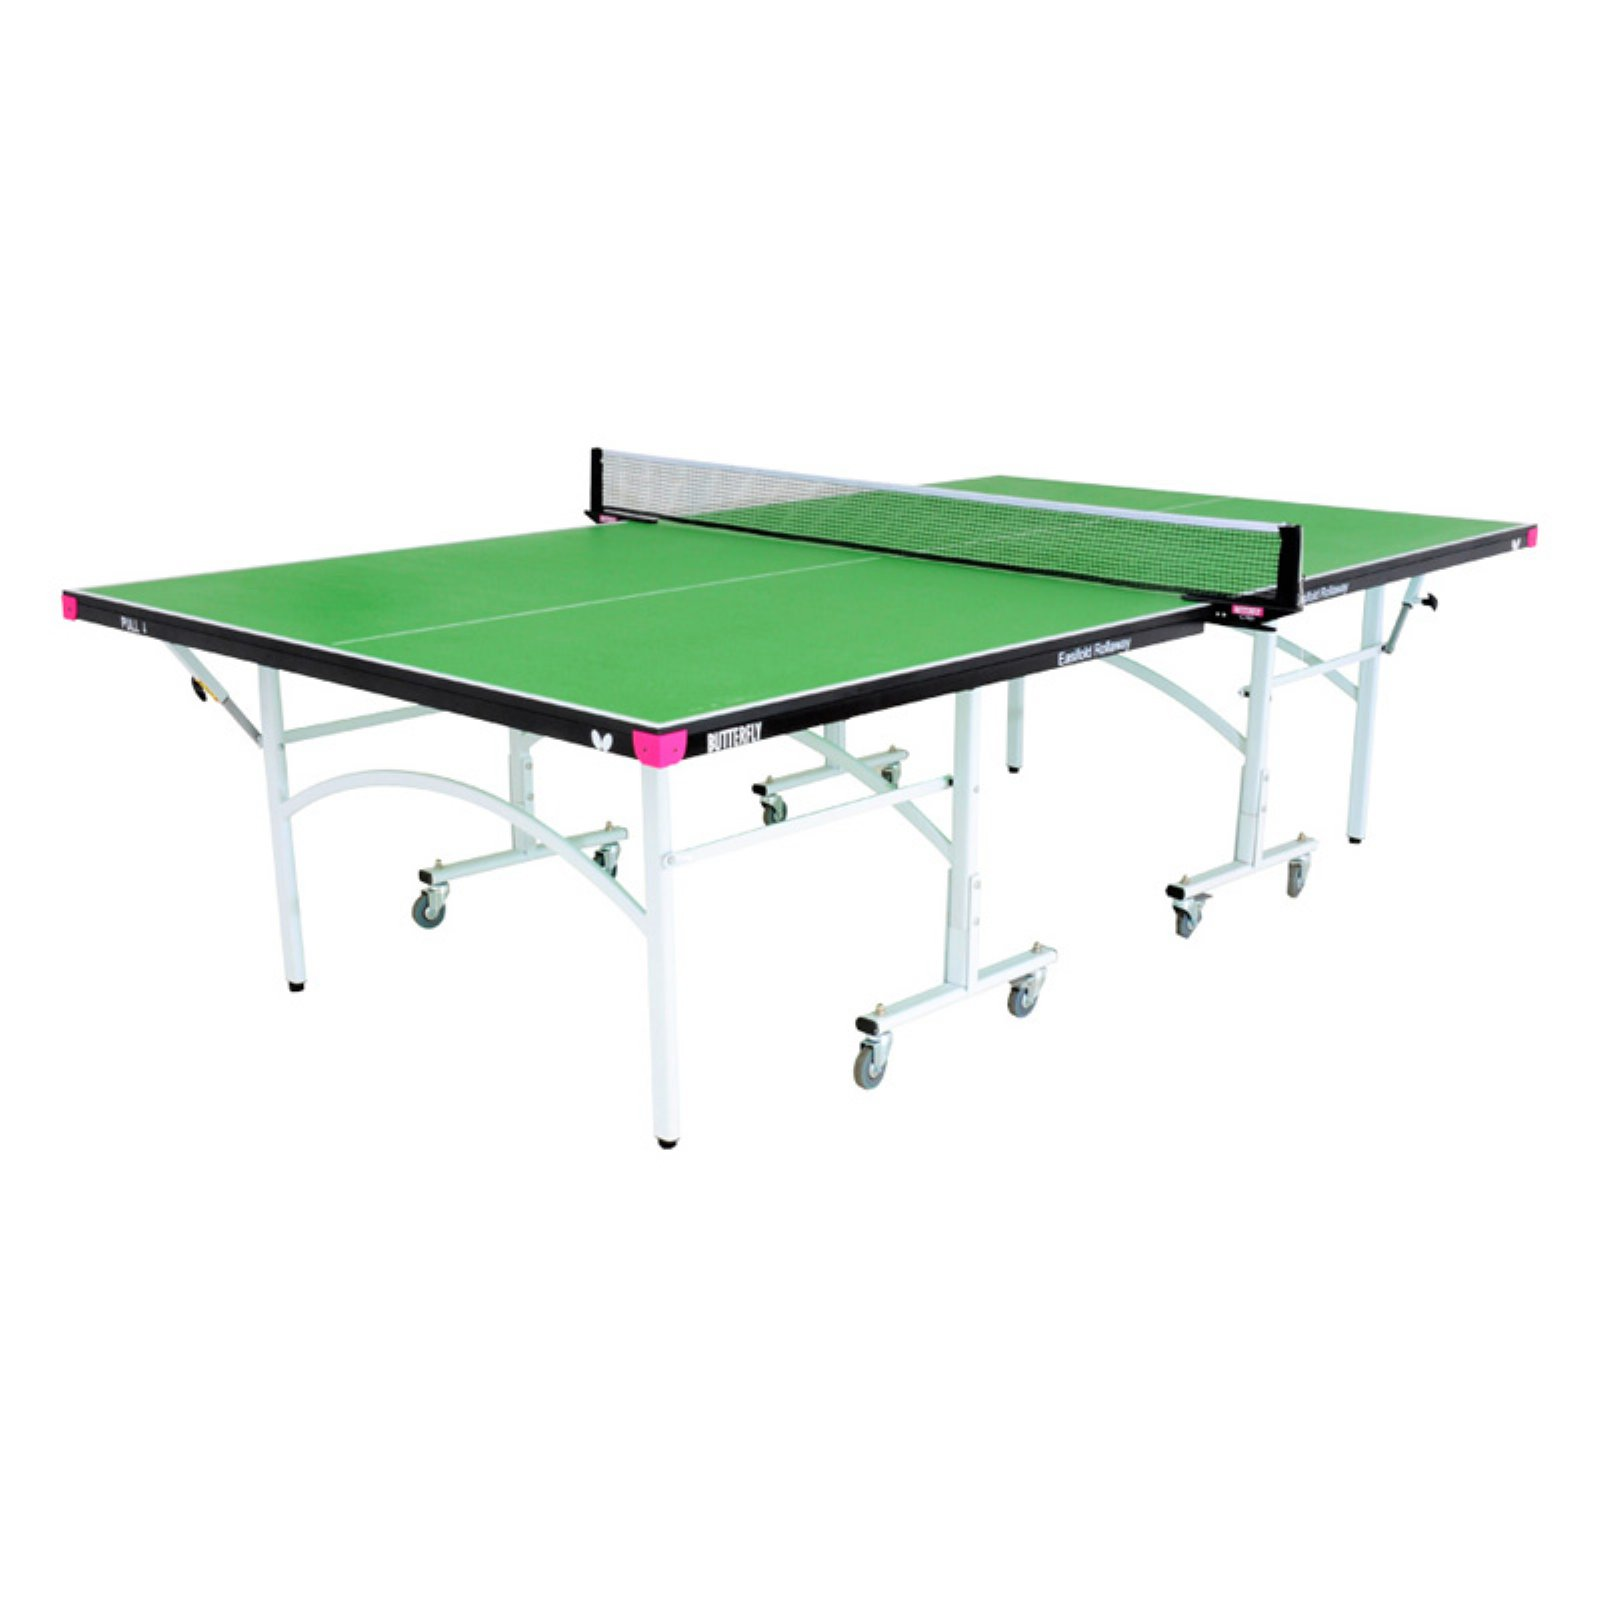 Butterfly Easifold 19 Rollaway Table Tennis Table,Green